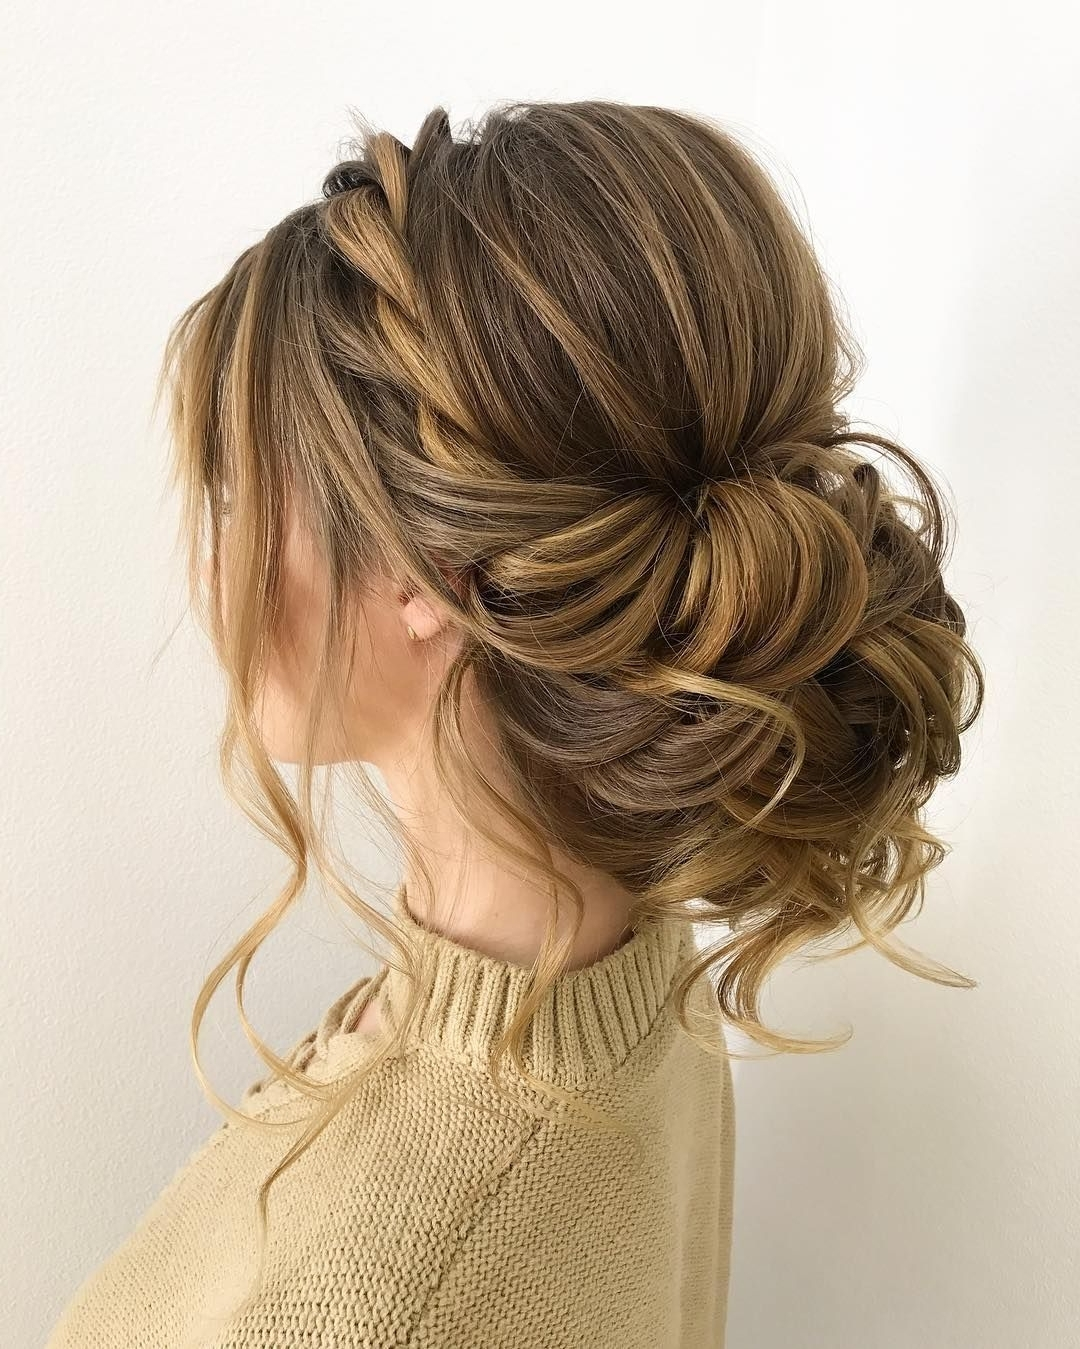 Newest Updo Wedding Hairstyles For Long Hair Throughout Gorgeous Wedding Updo Hairstyles That Will Wow Your Big Day (View 6 of 15)